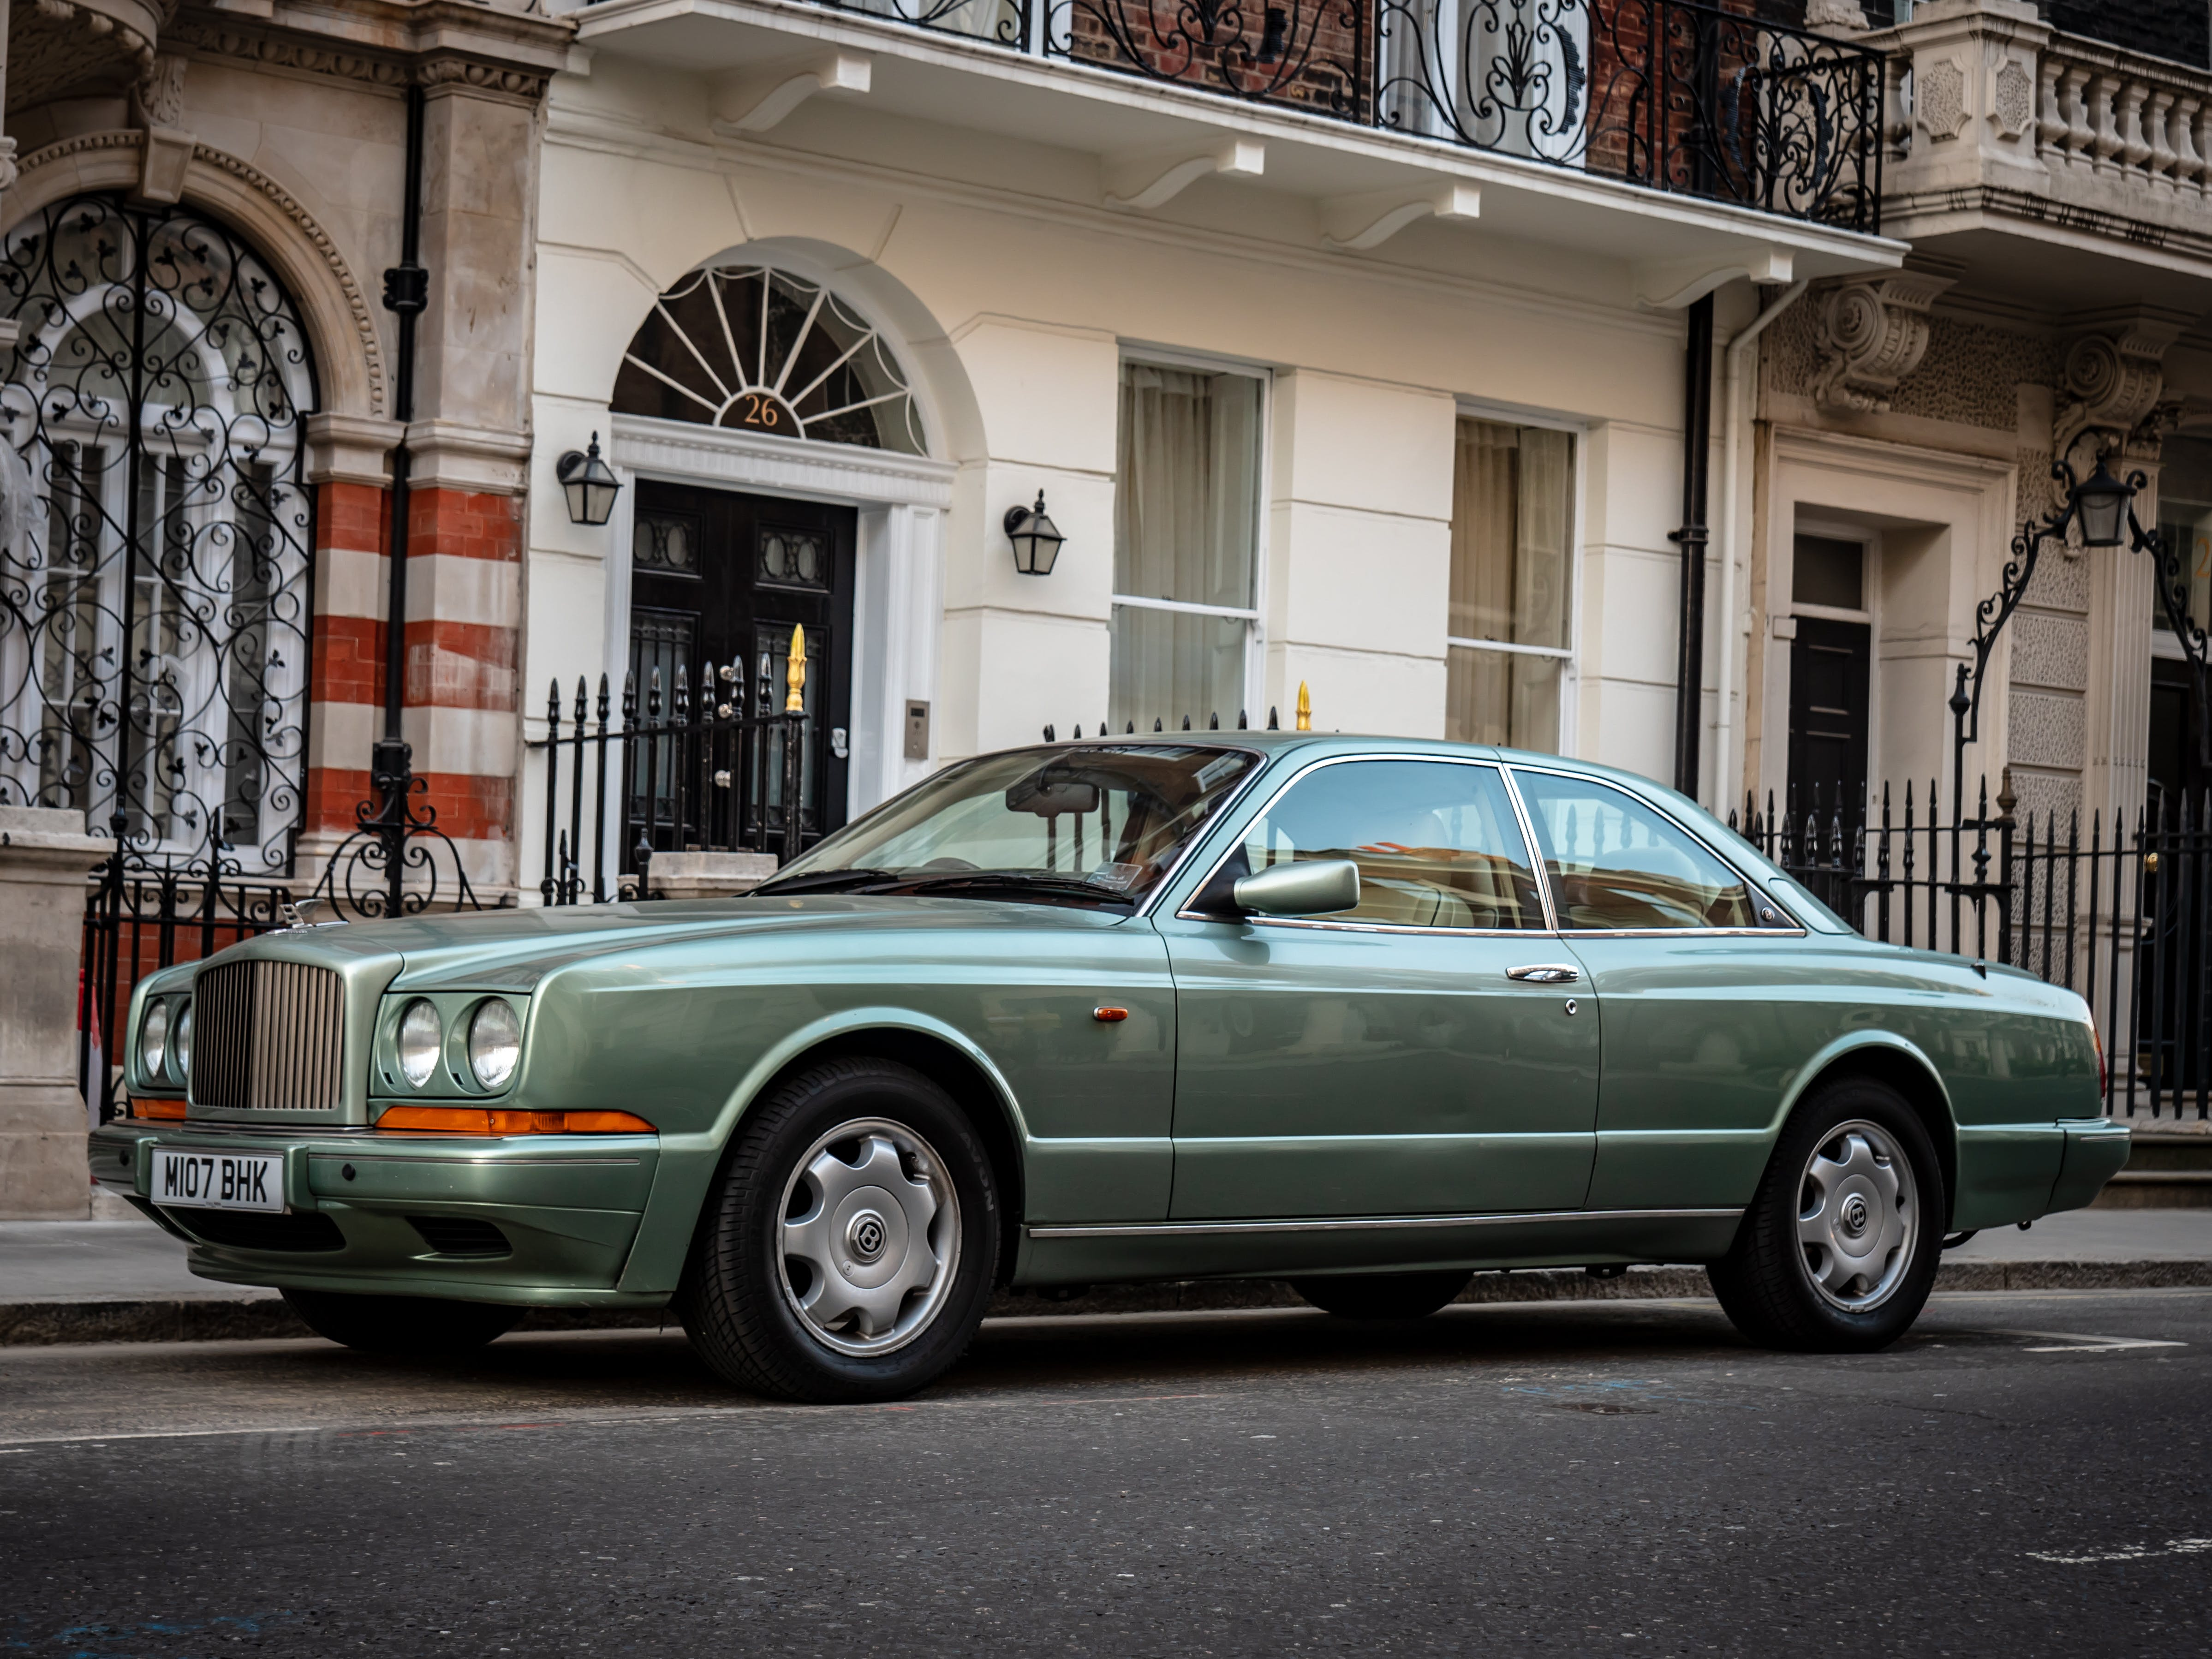 Free stock photo of bentley, Bentley Continental GT, coupe, luxury car